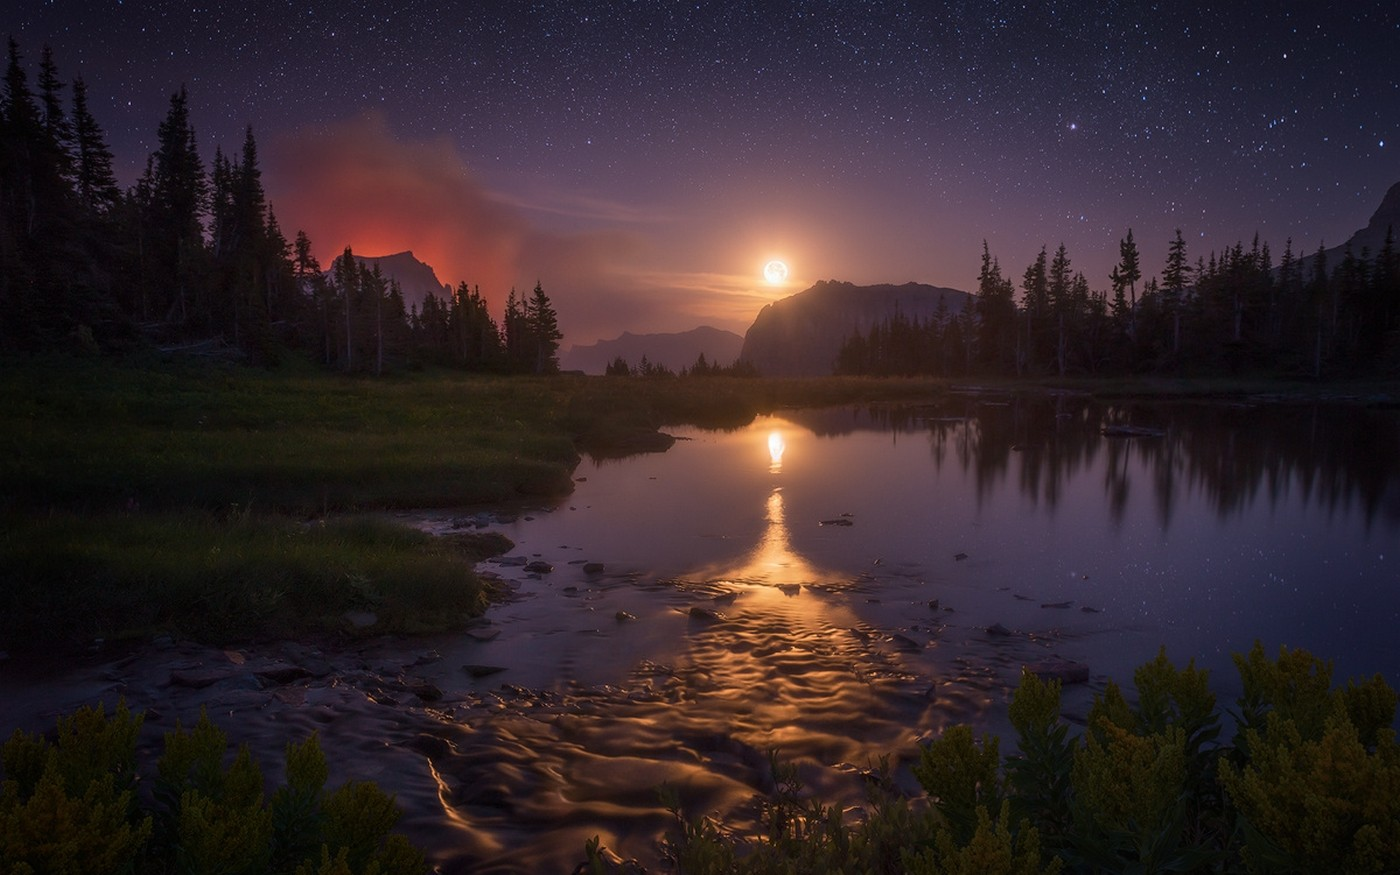 General 1400x875 landscape nature starry night Moon lake reflection Glacier National Park Montana trees shrubs moonlight mountains sky